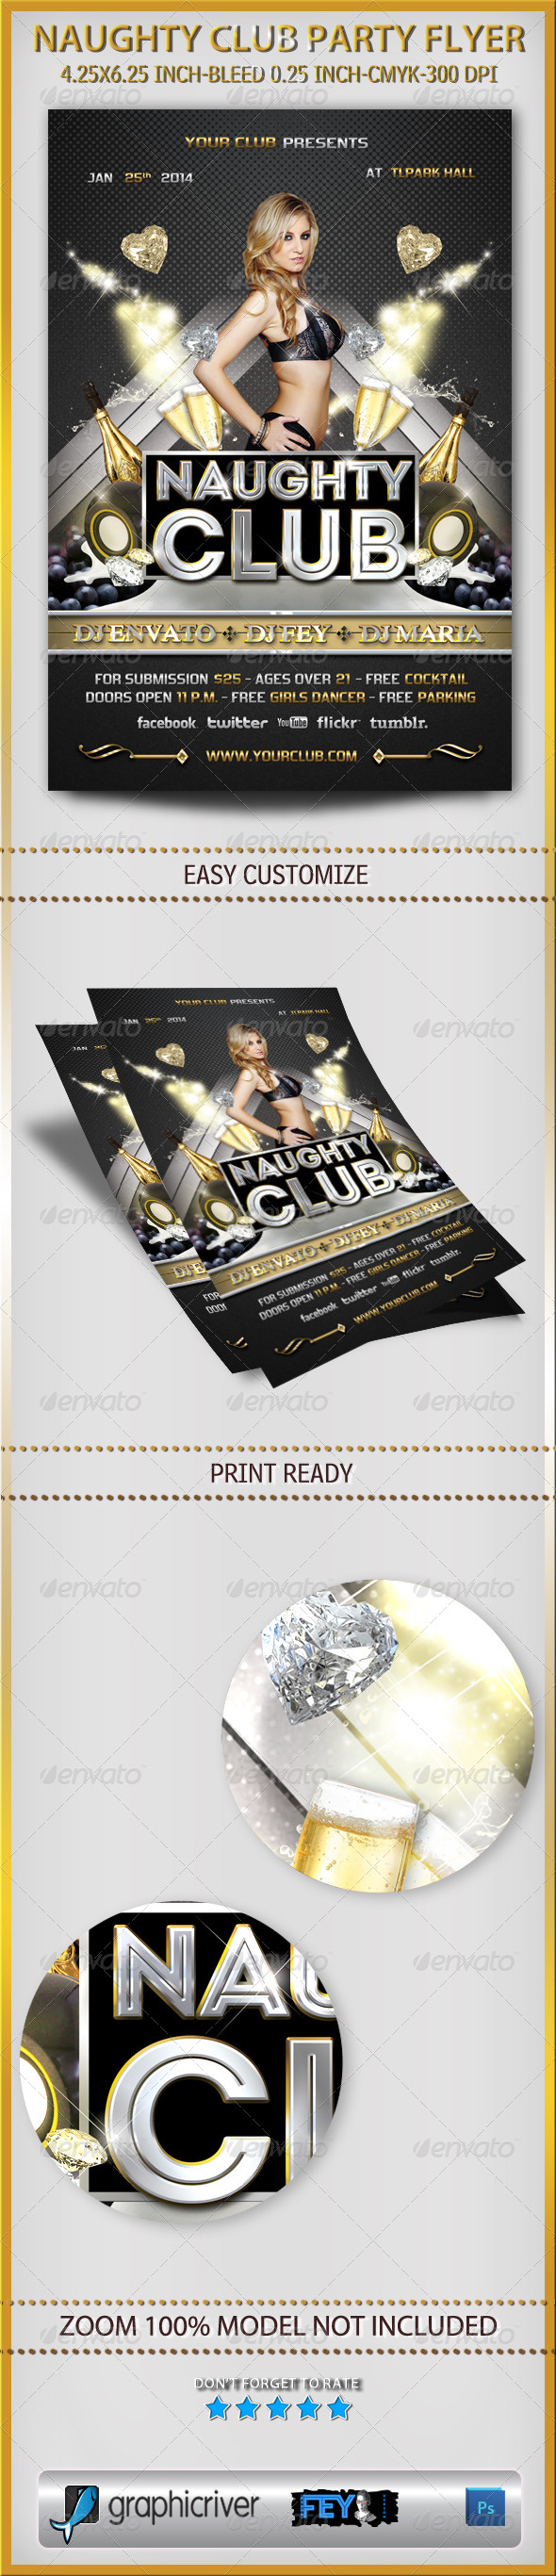 GraphicRiver Naughty Club Party Flyer 5987840